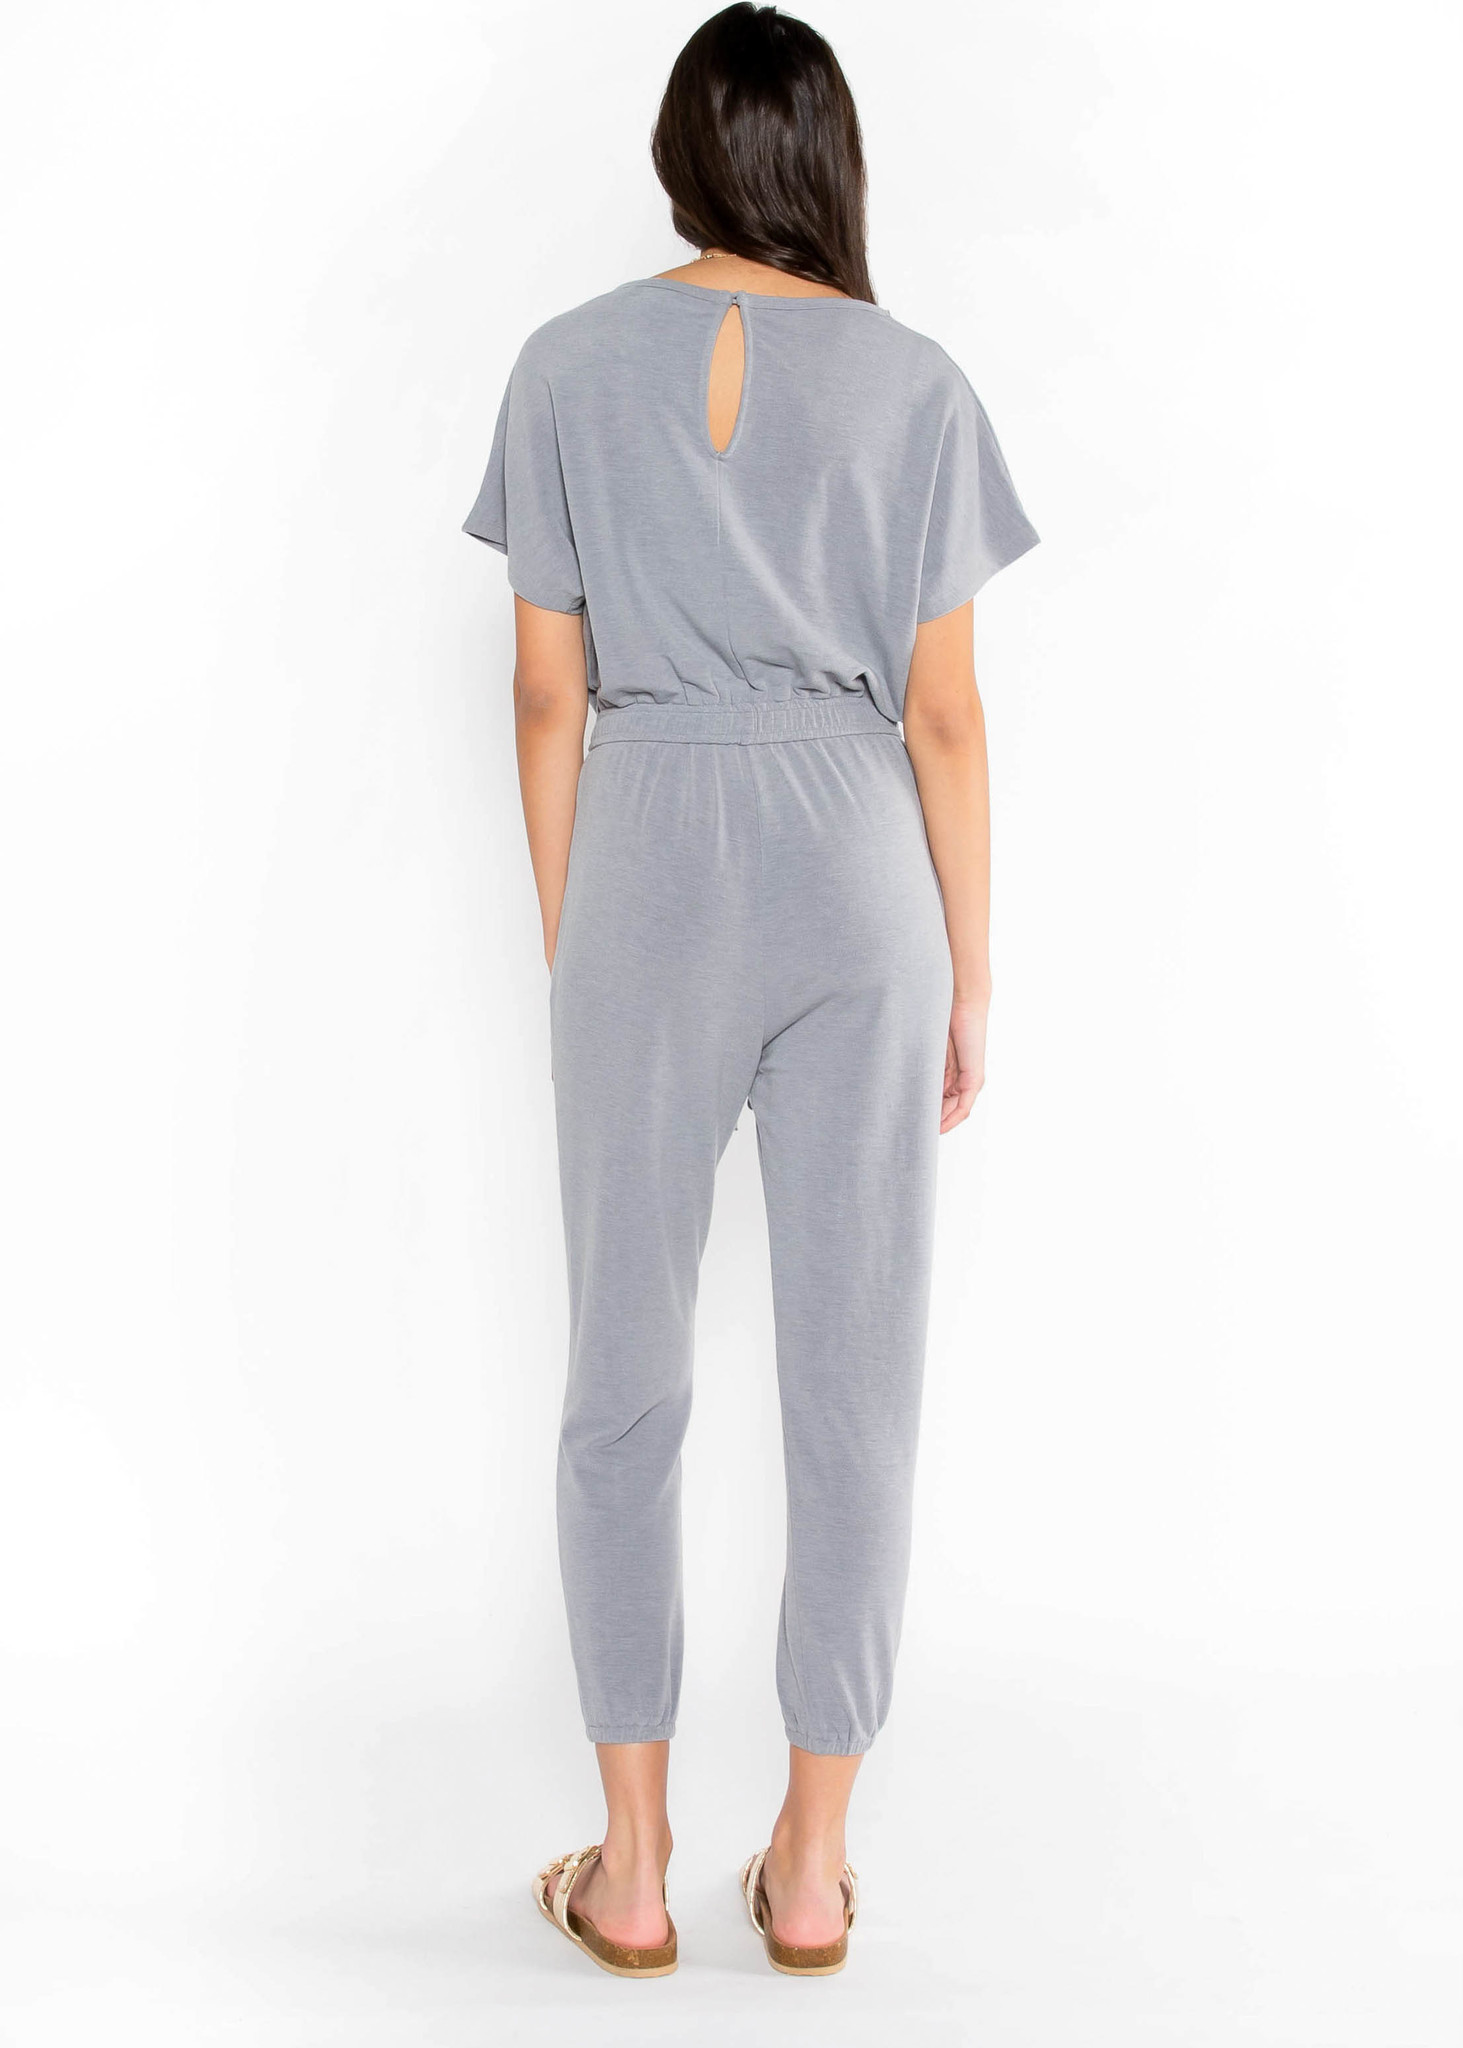 SOMETHING REAL JUMPSUIT - GREY